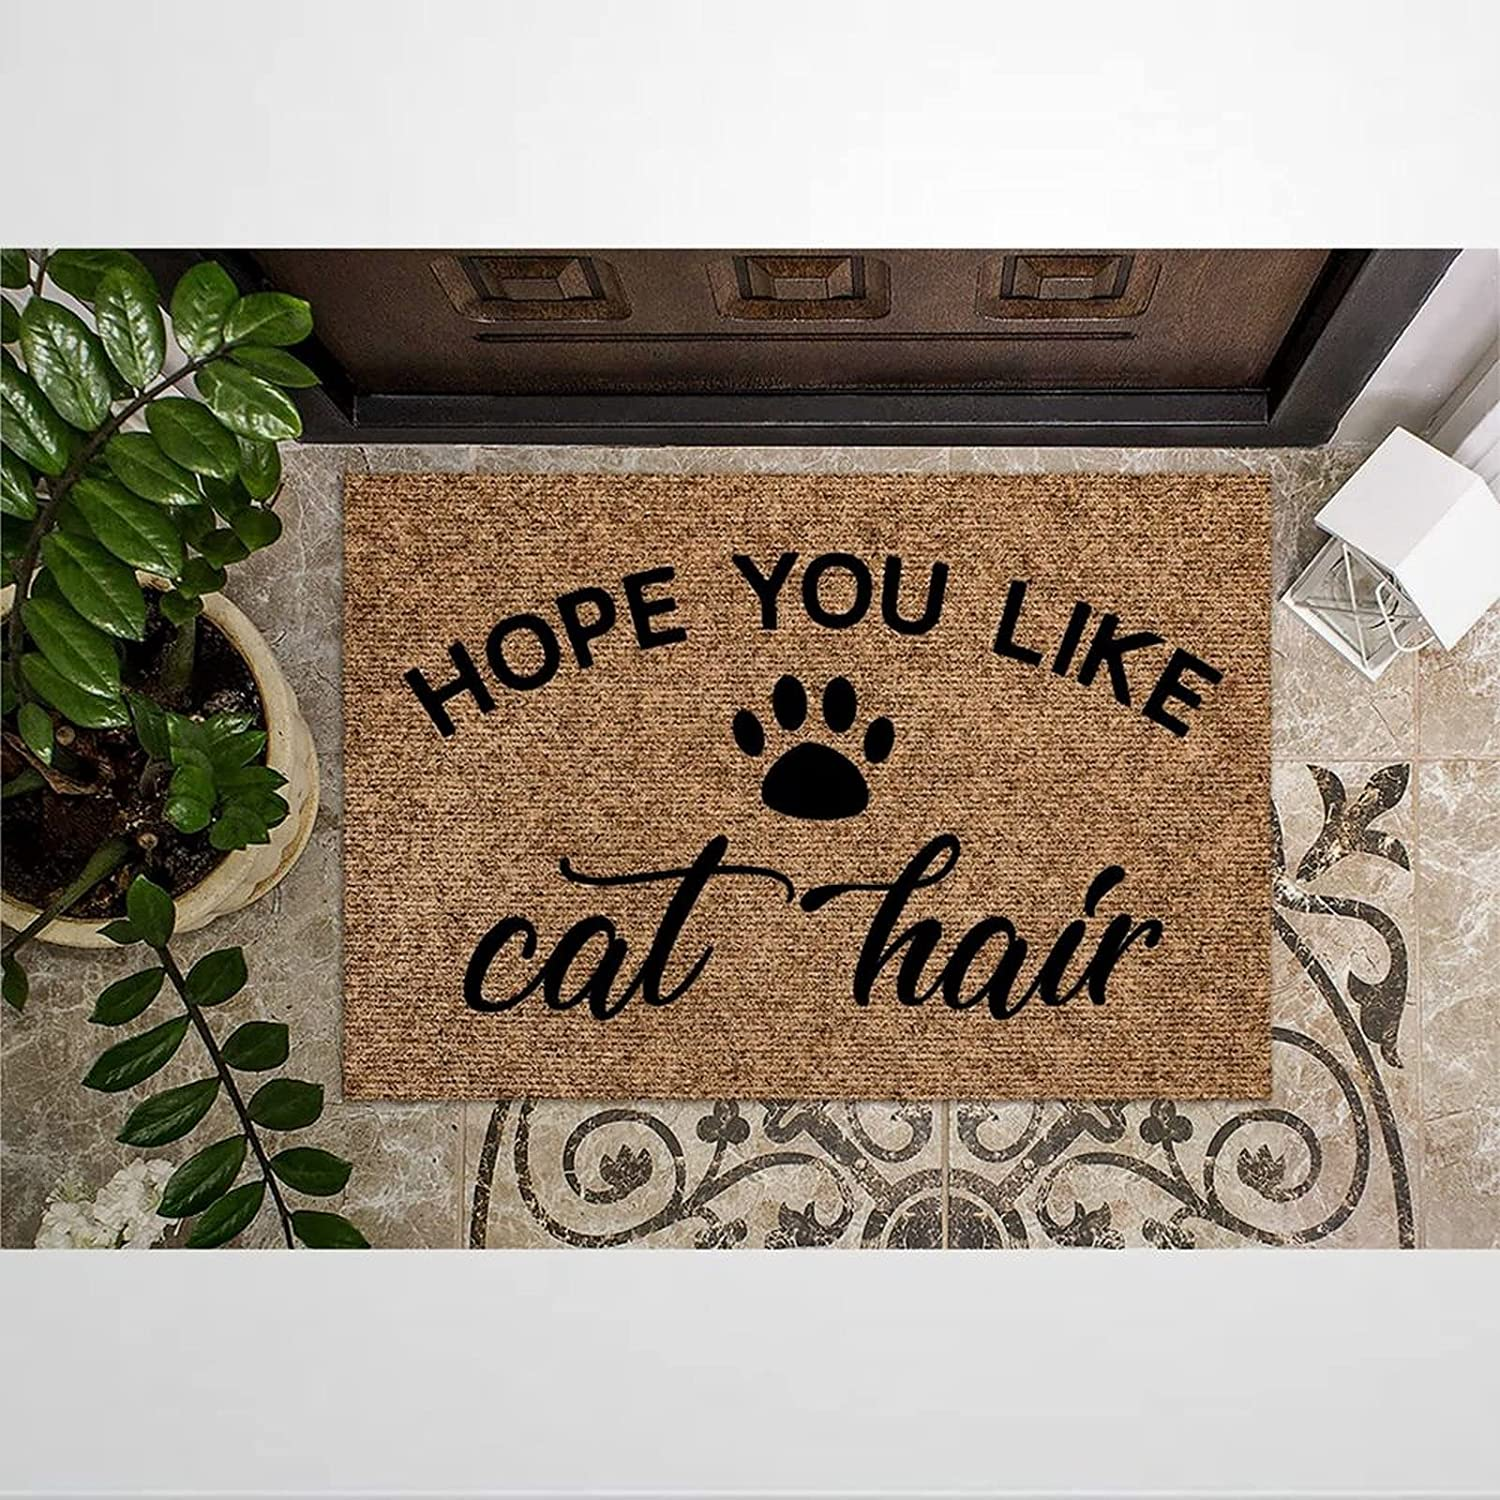 Hope You Like Cat Hair Coir Rustic Doormat Mats Reservation Door Welcome for Recommendation